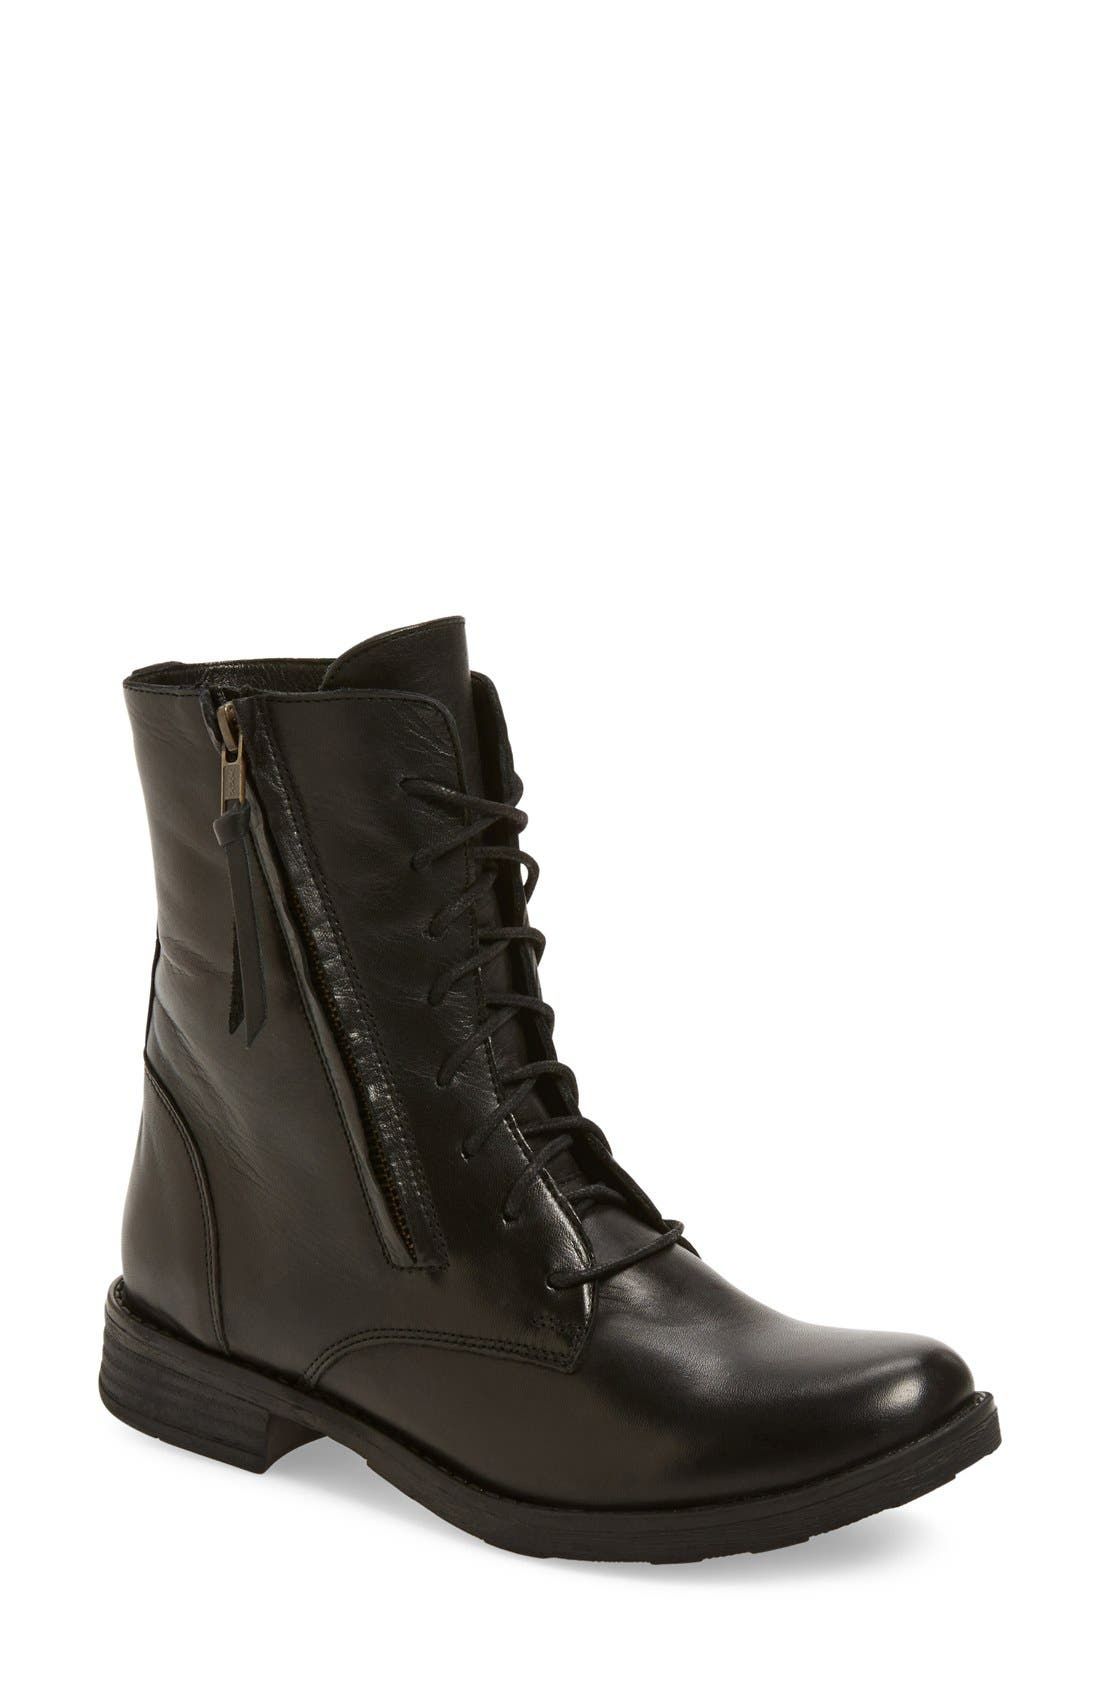 Alternate Image 1 Selected - Miz Mooz 'Tuned' Lace-Up Boot (Women)